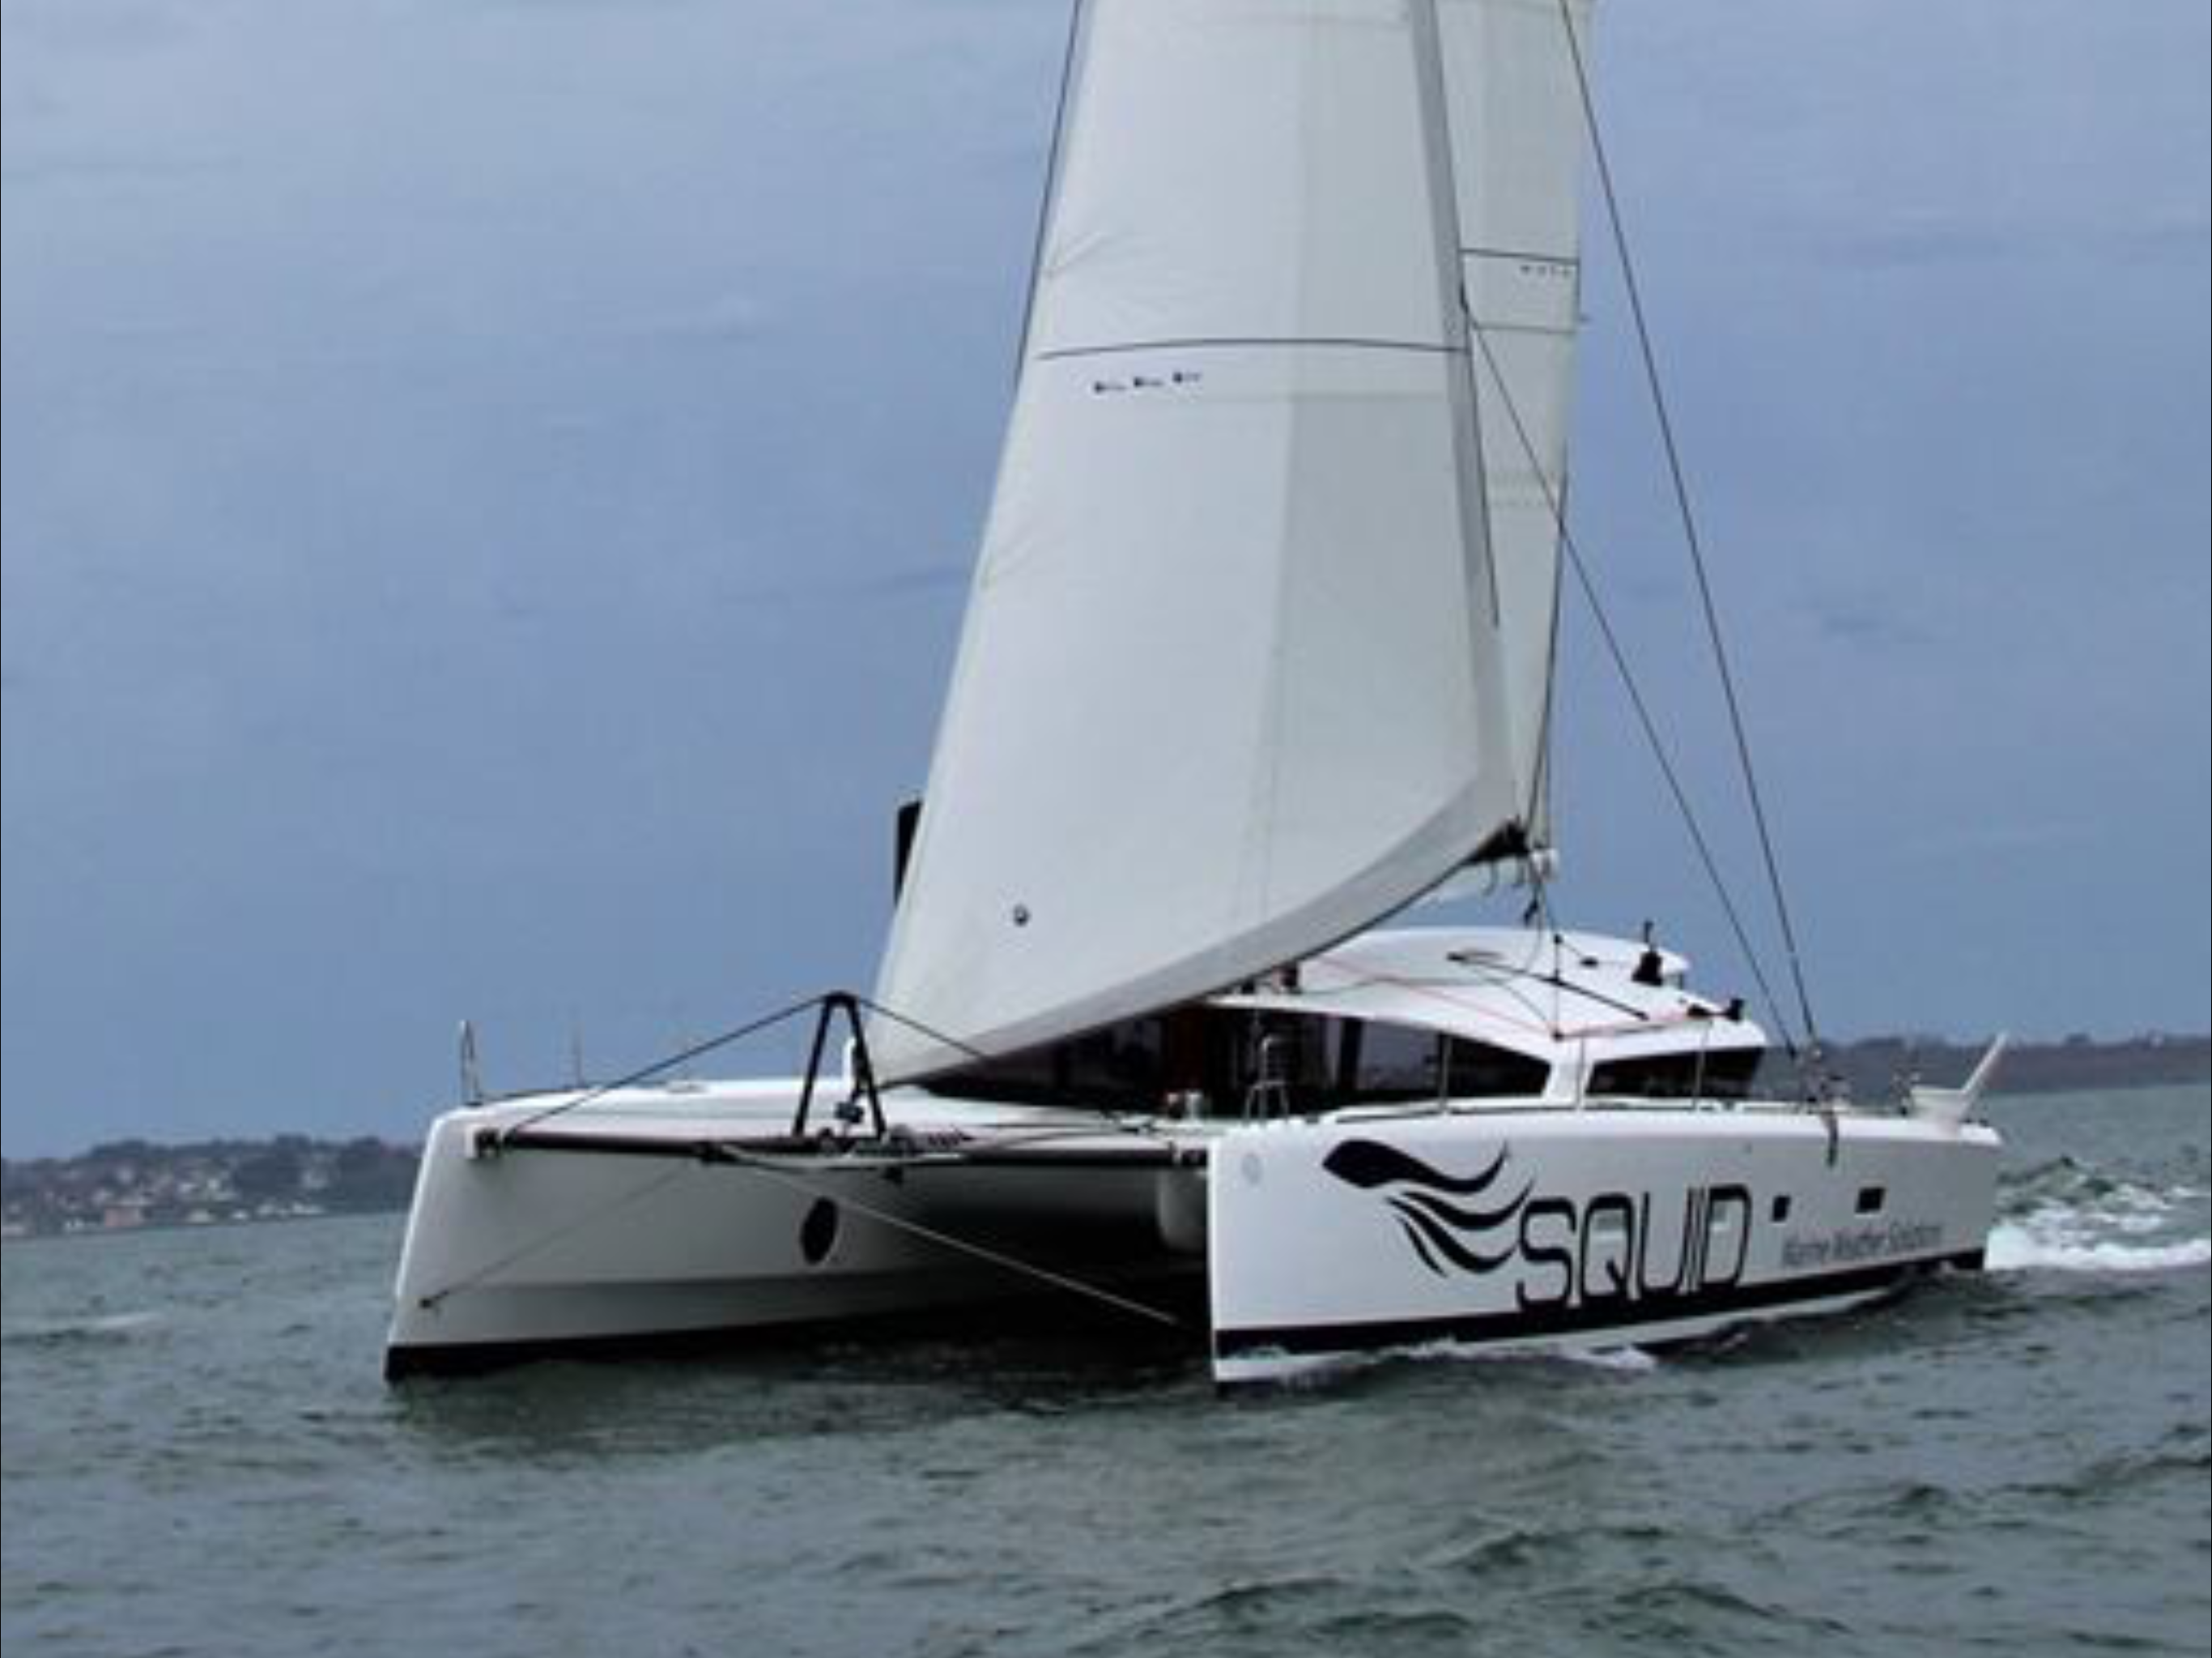 Pin by Phil Southwell on yacht styling Yacht, Boat, Style